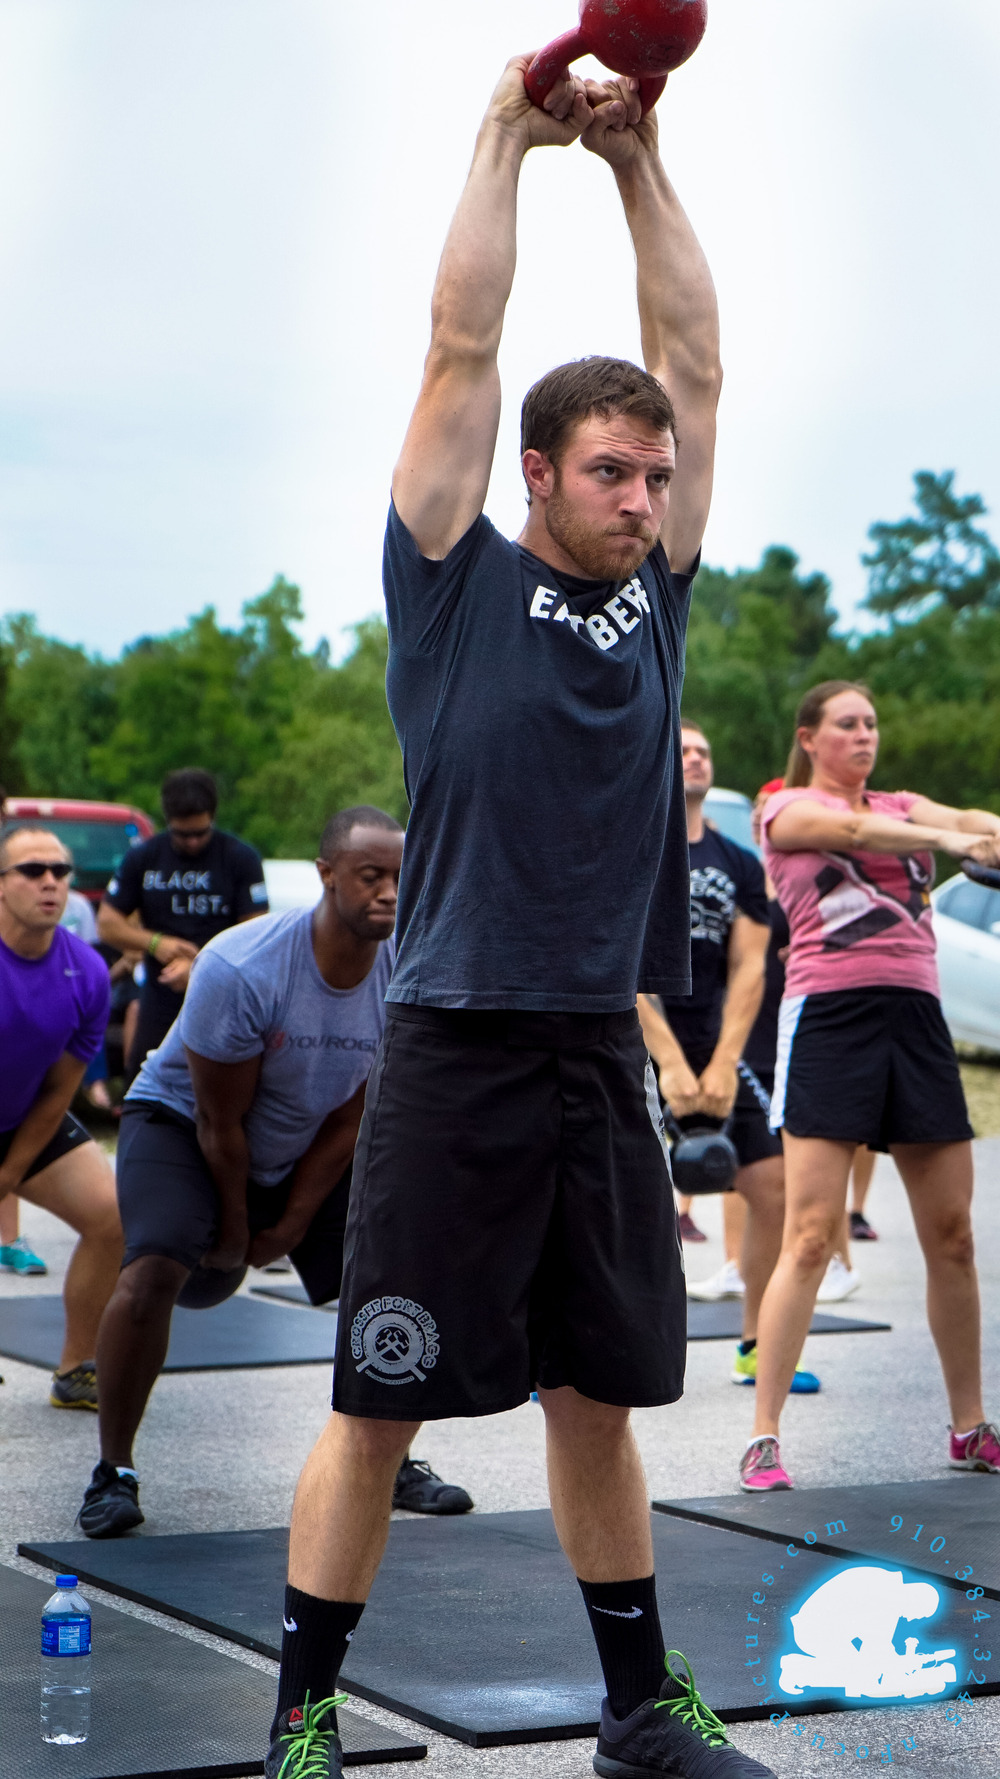 Crossfit Ft Bragg July Event-0954.jpg